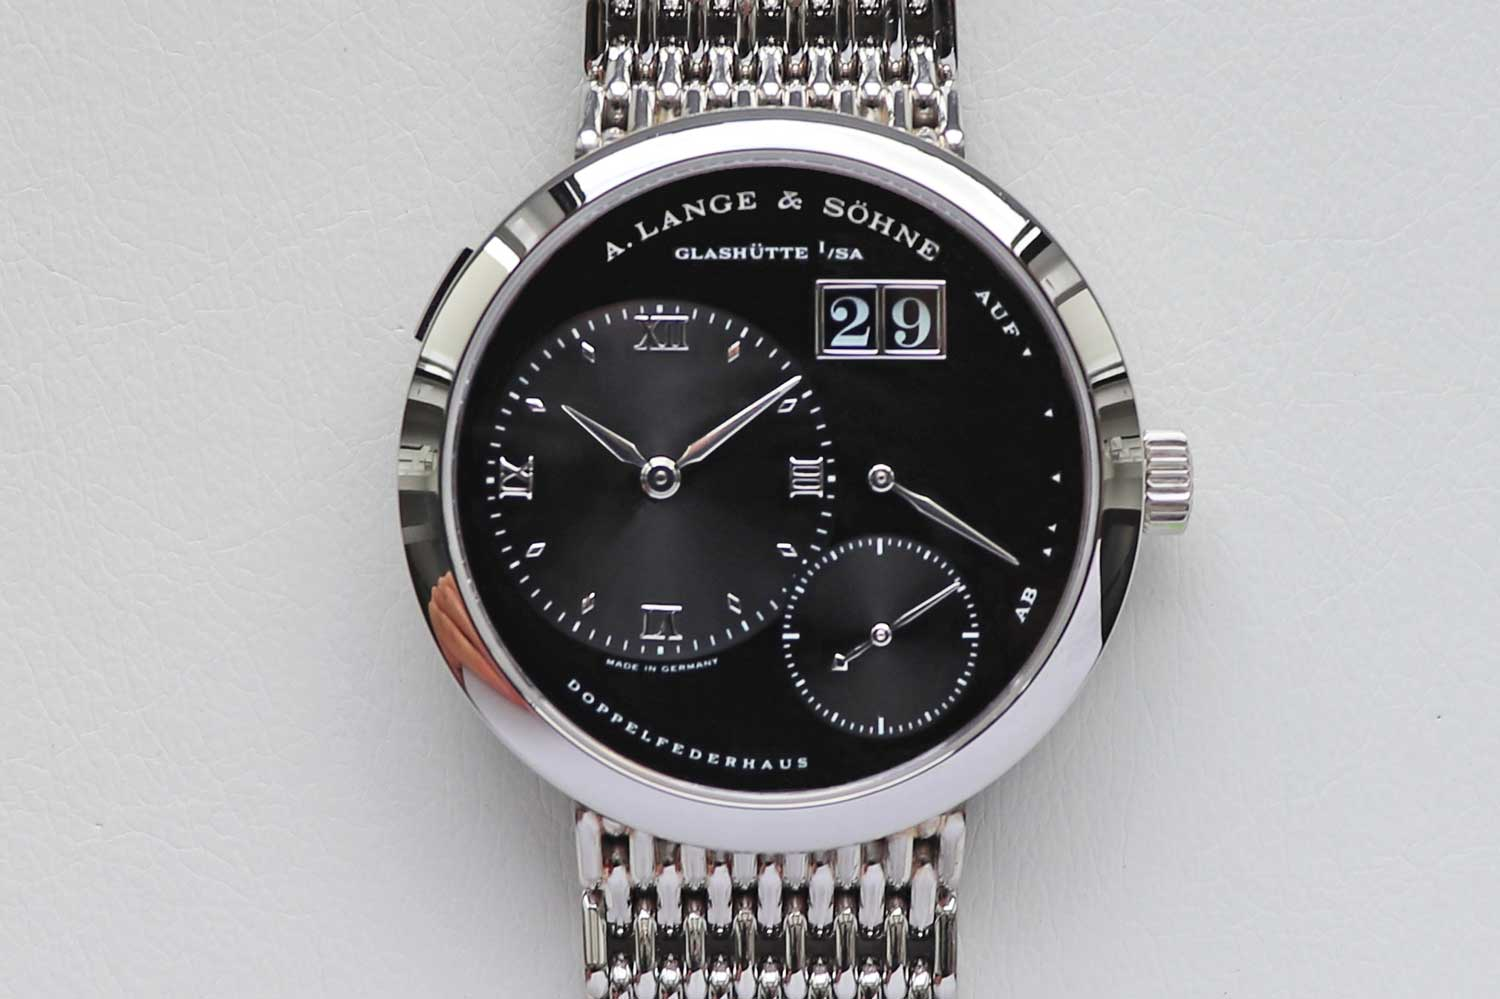 """The Lange 1 """"Darth"""" seen here paired with the Wellendorff or """"beads of rice"""" style bracelet that was offered as a special-order request (Image: langepedia.com)"""